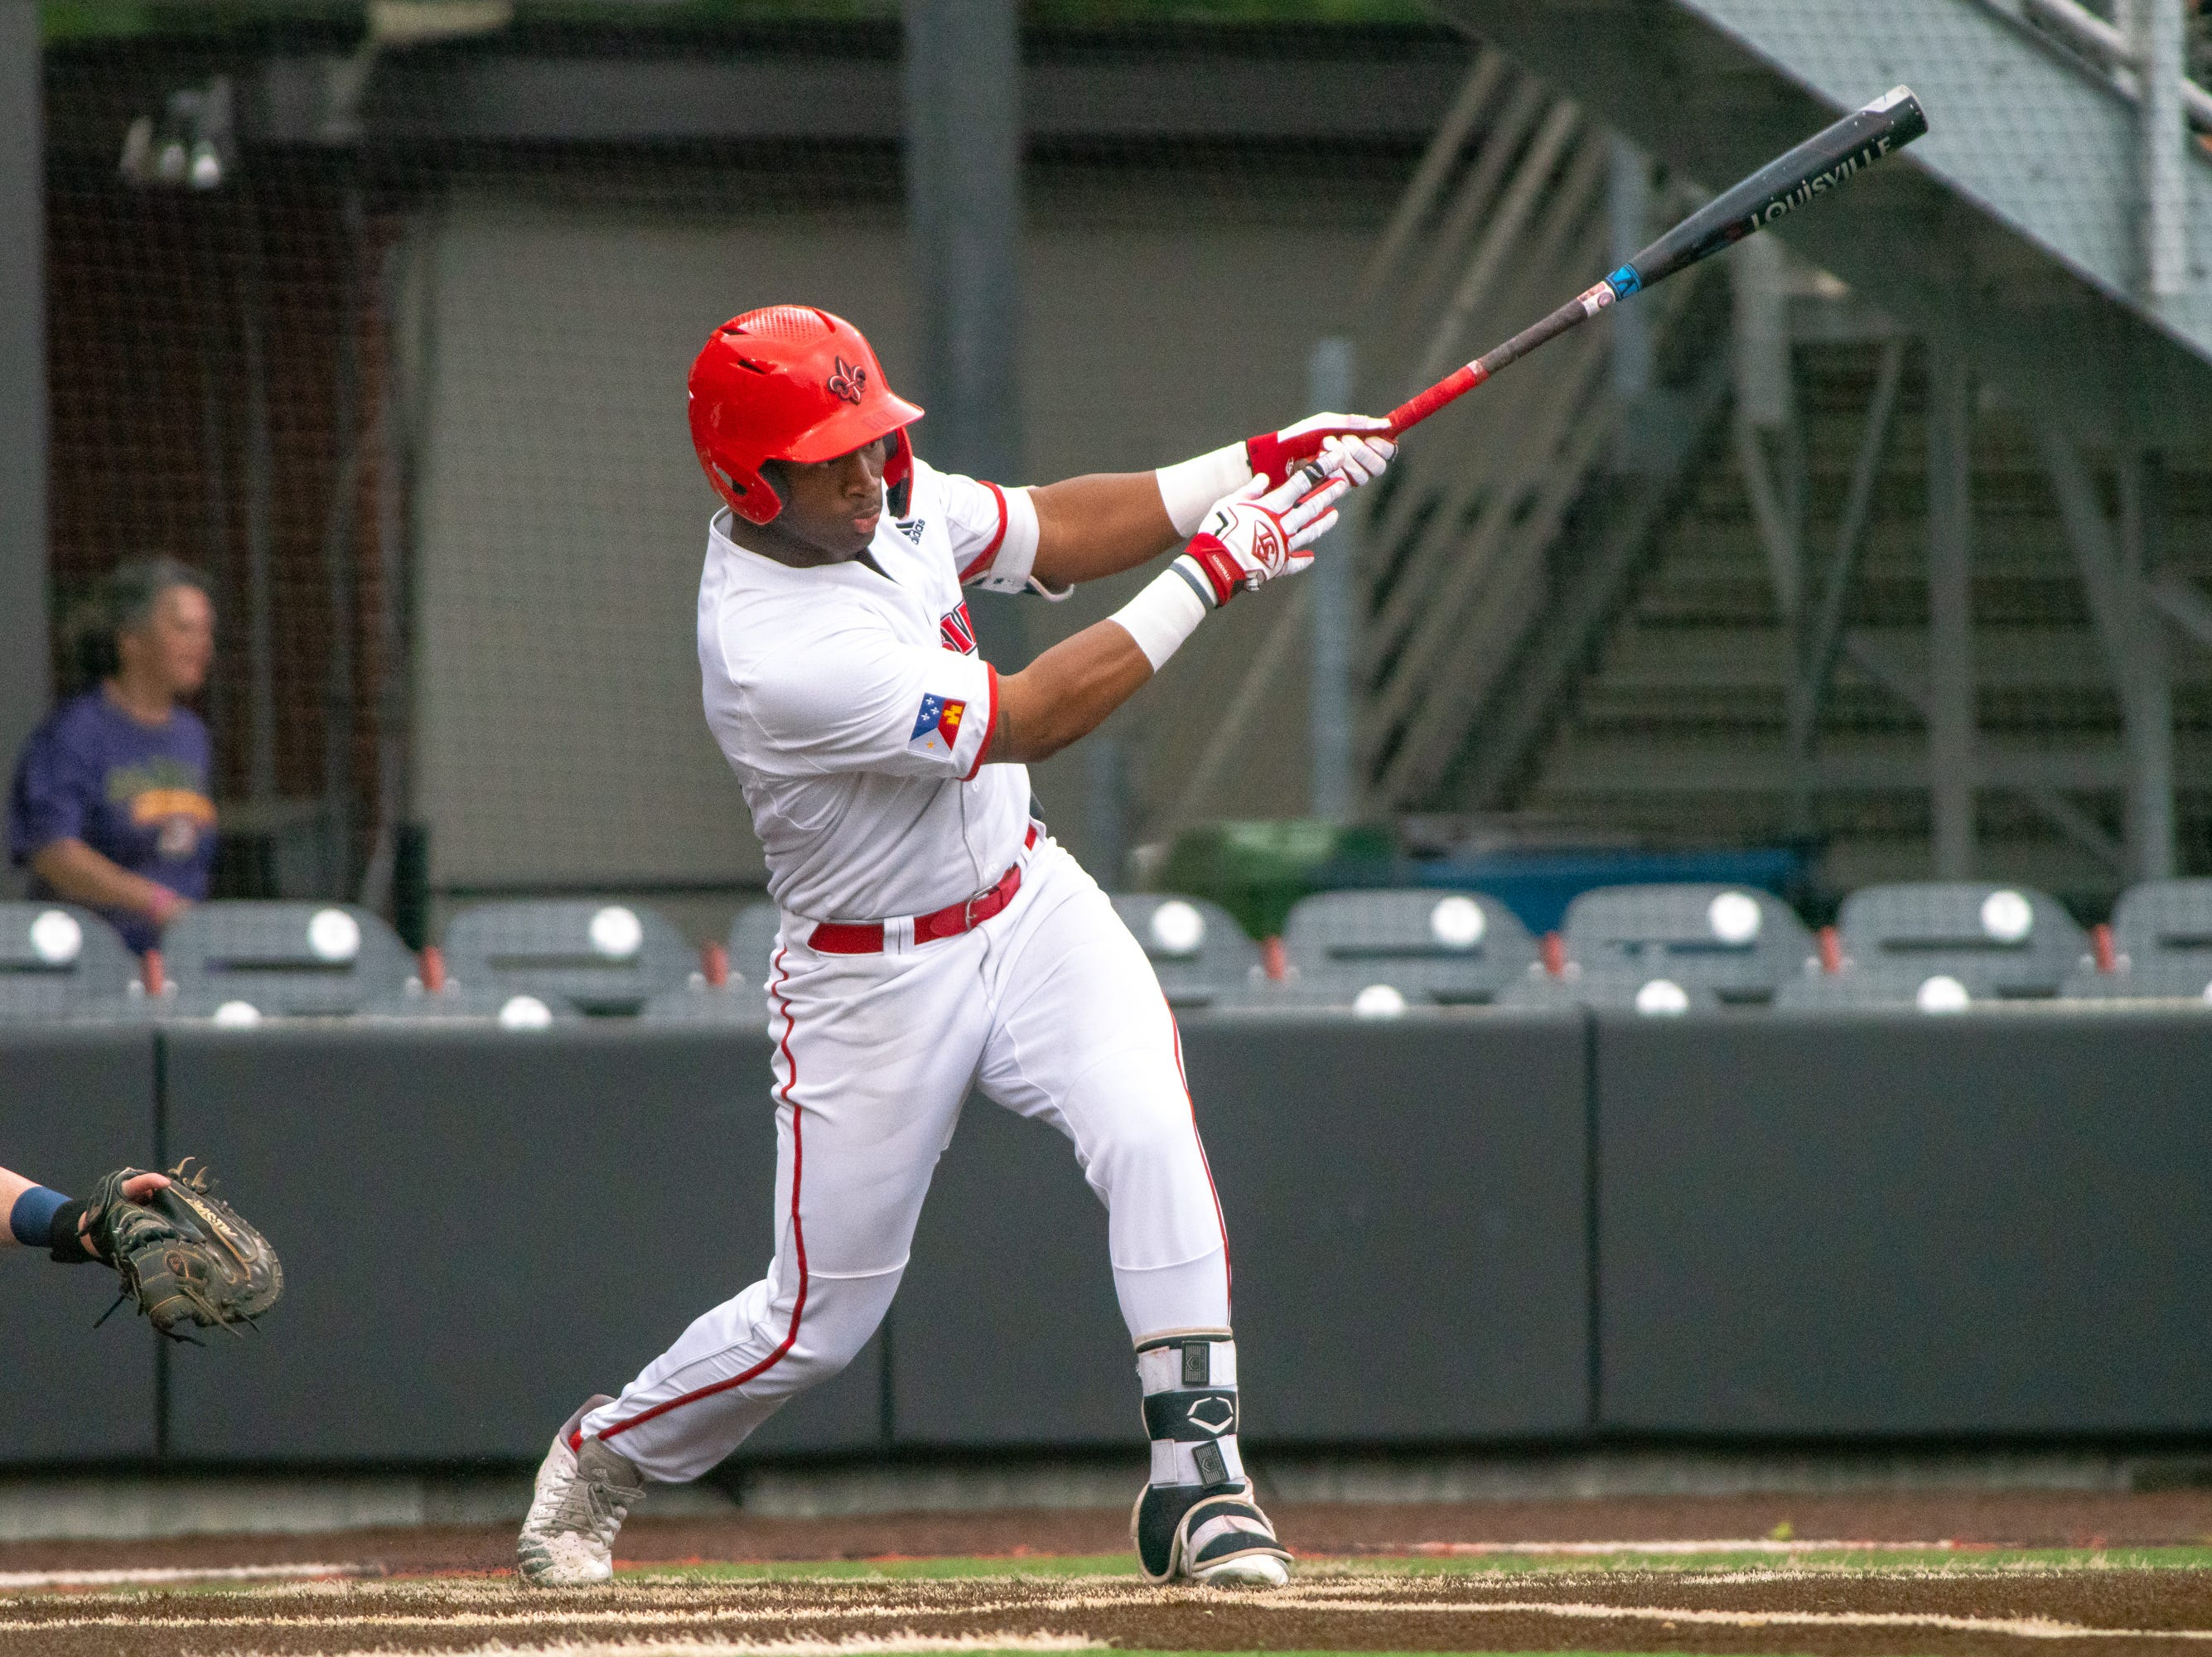 """UL's Tremaine Spears hits the ball as the Ragin' Cajuns take on the South Alabama Jaguars at M.L. """"Tigue"""" Moore Field on Saturday, April 13, 2019."""